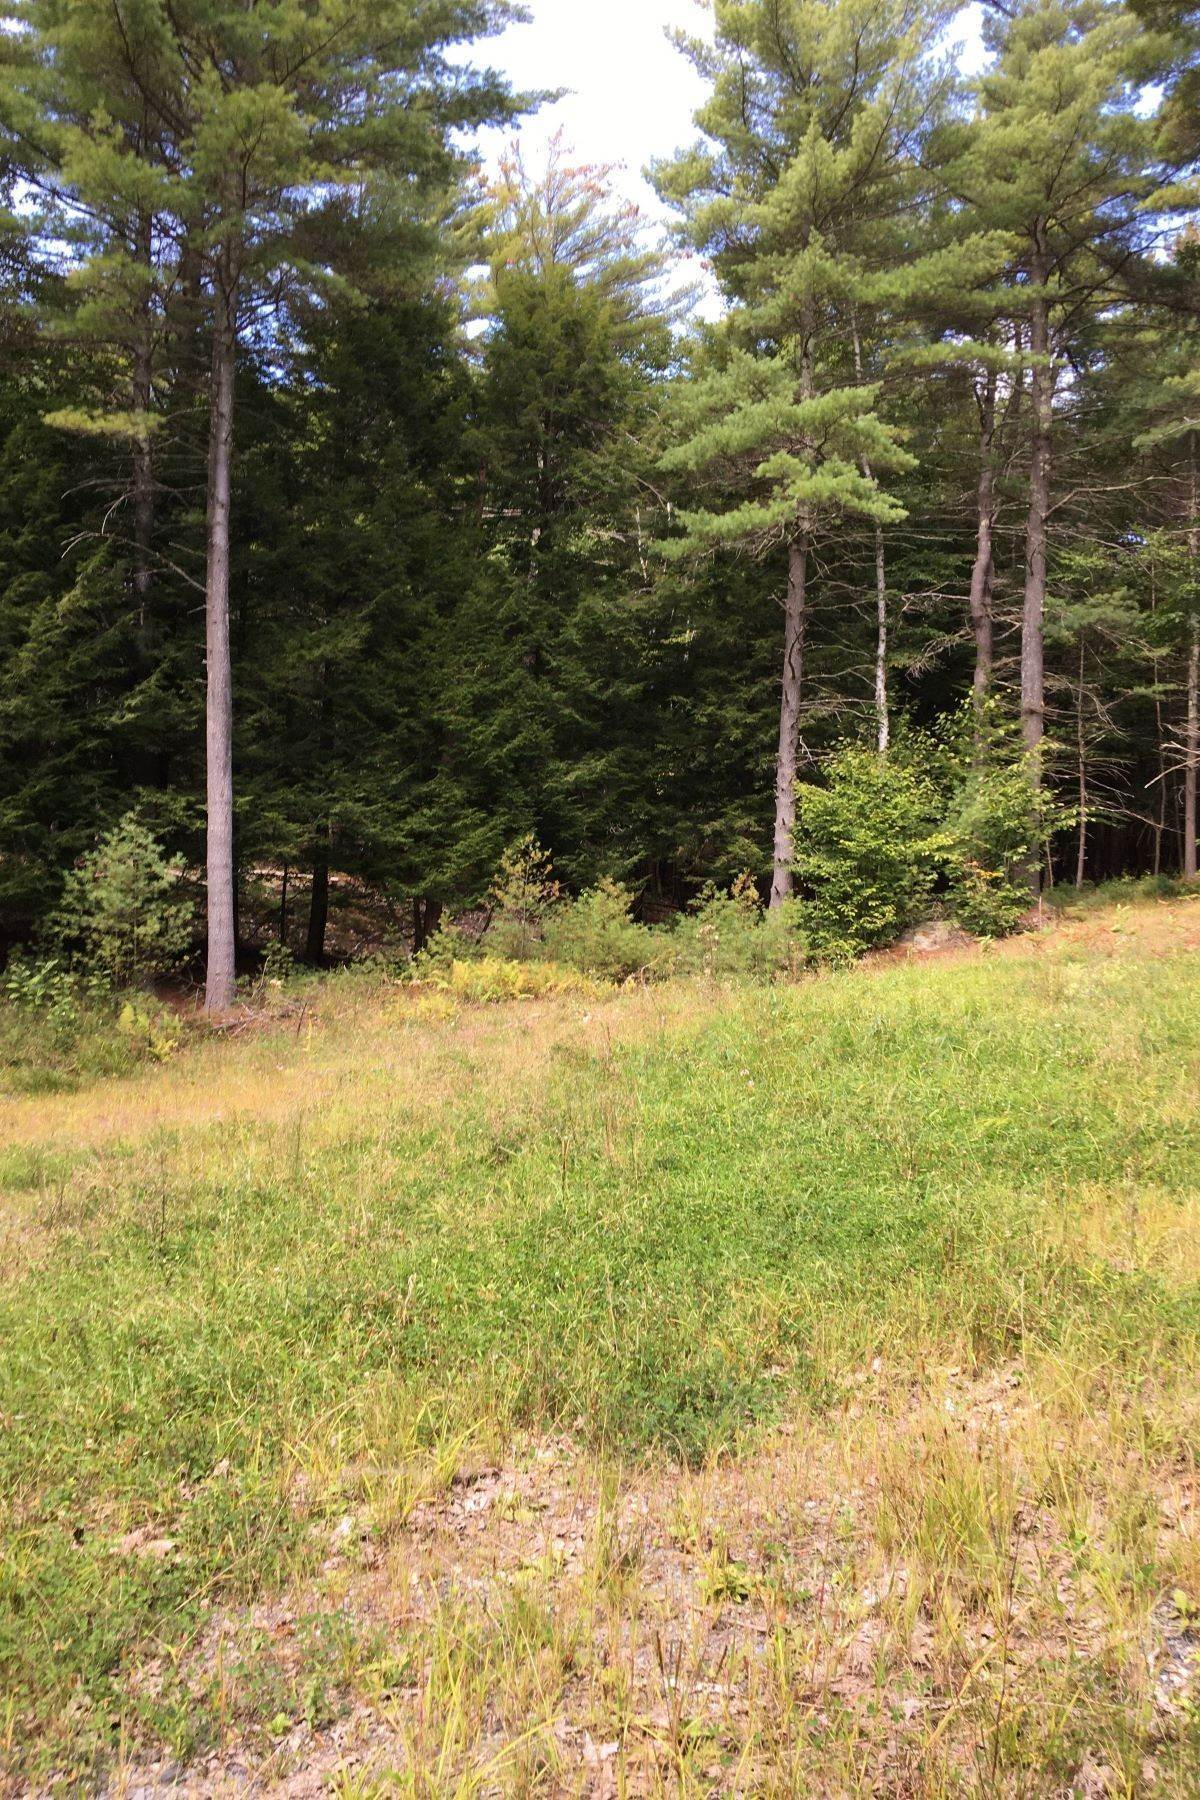 Land for Sale at County Road 10, Corinth, NY 12822 County Road 10 Corinth, New York 12822 United States